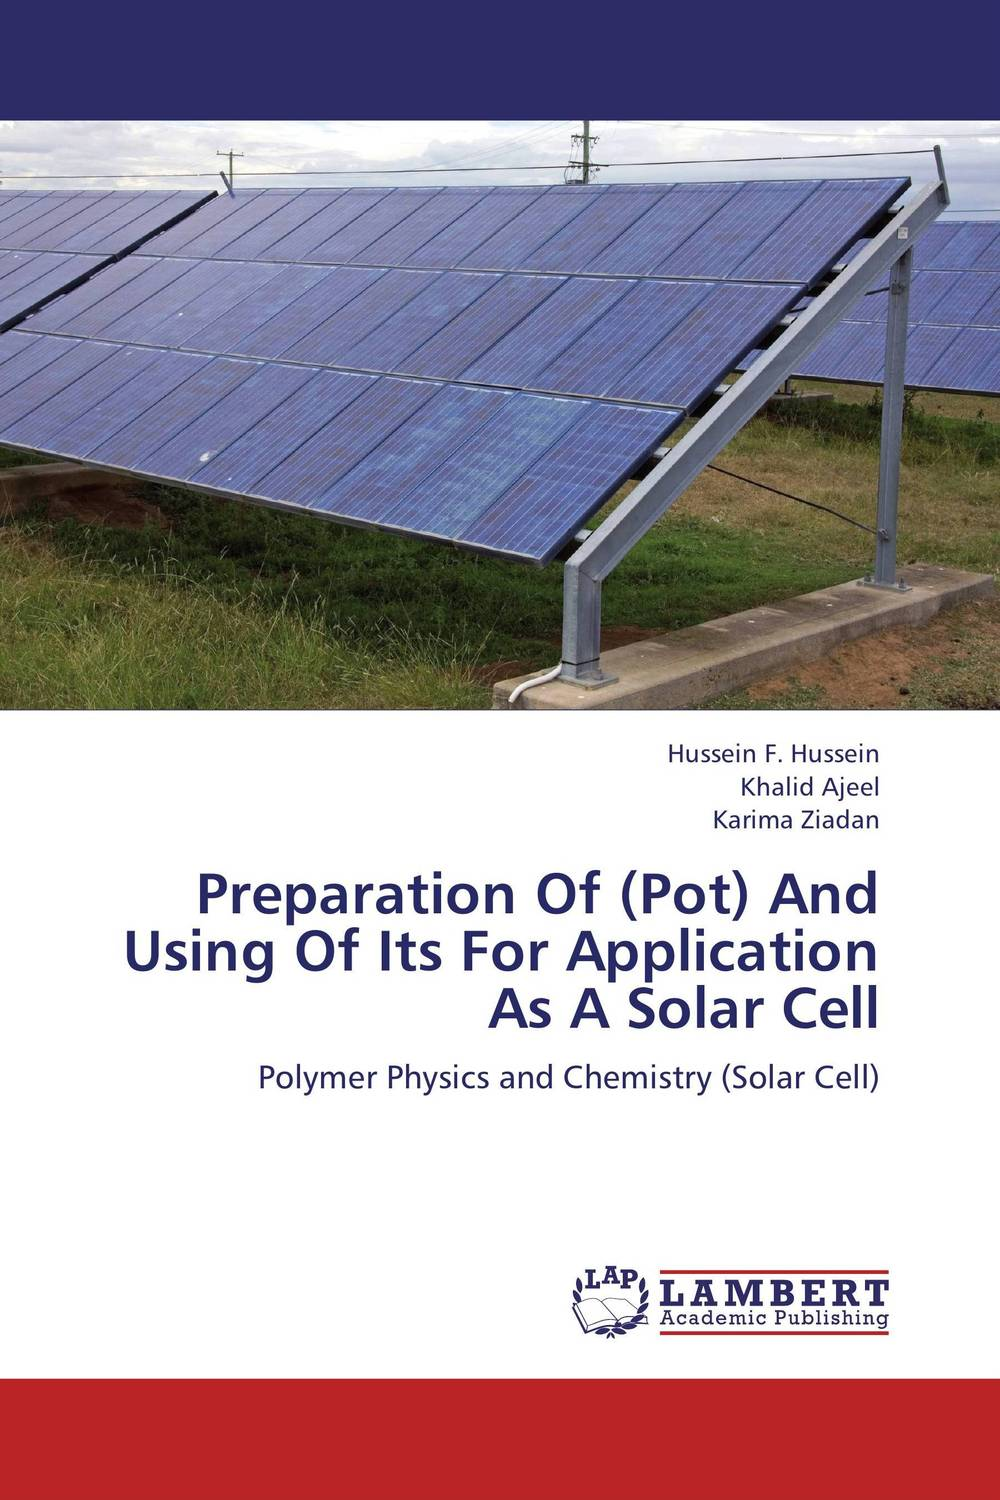 Preparation Of (Pot) And Using Of Its For Application As A Solar Cell jen fei loh and sujan debnath origami and its application in solar panel design